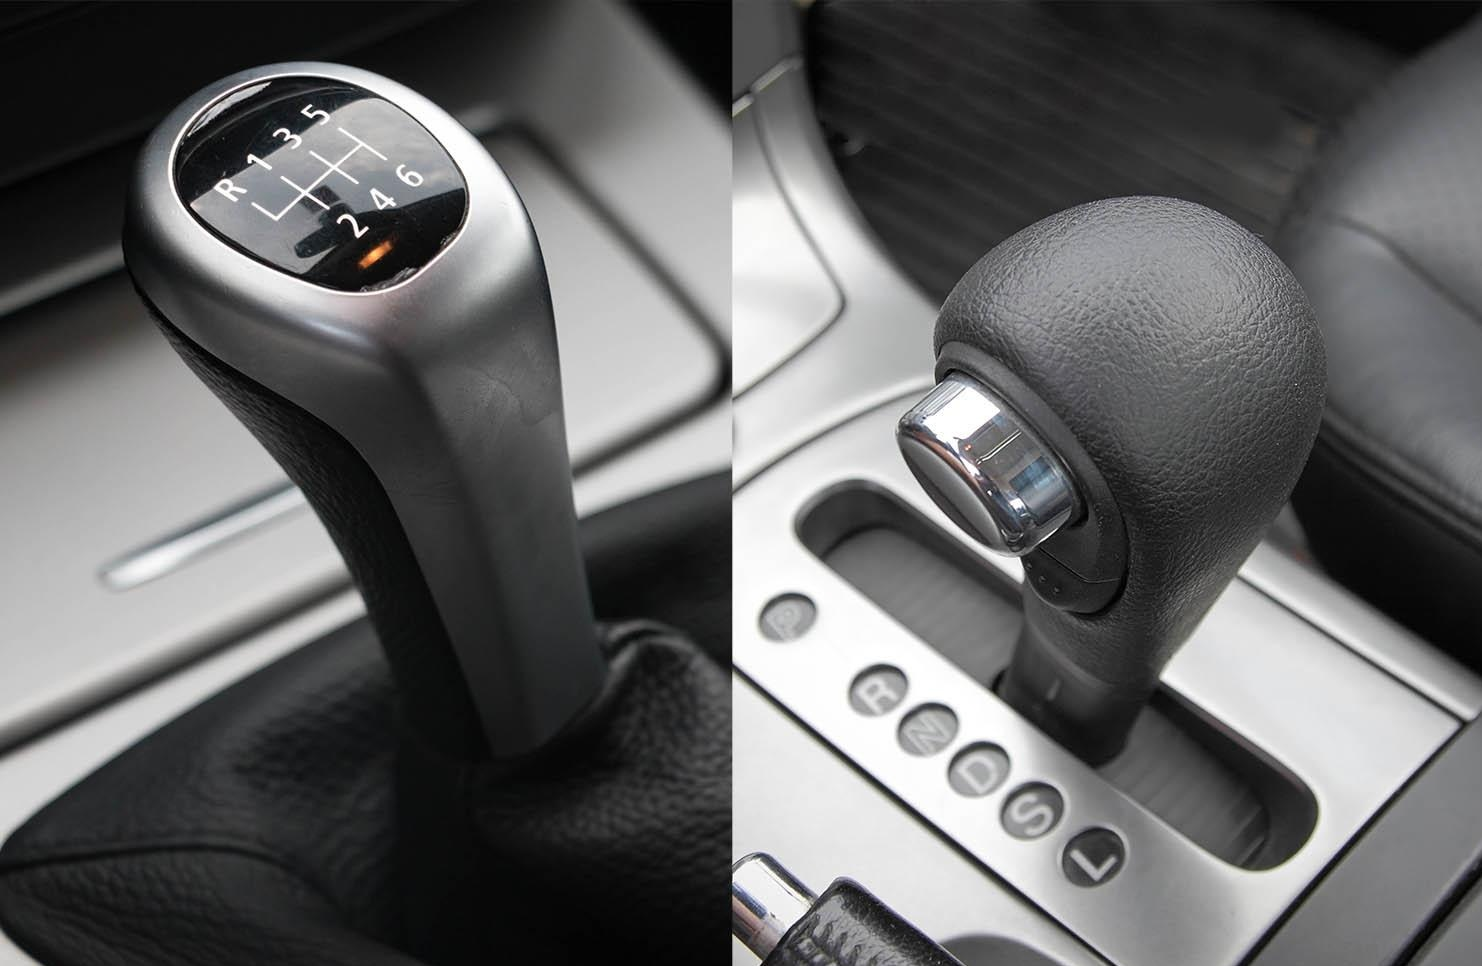 Image from:  Car from Japan